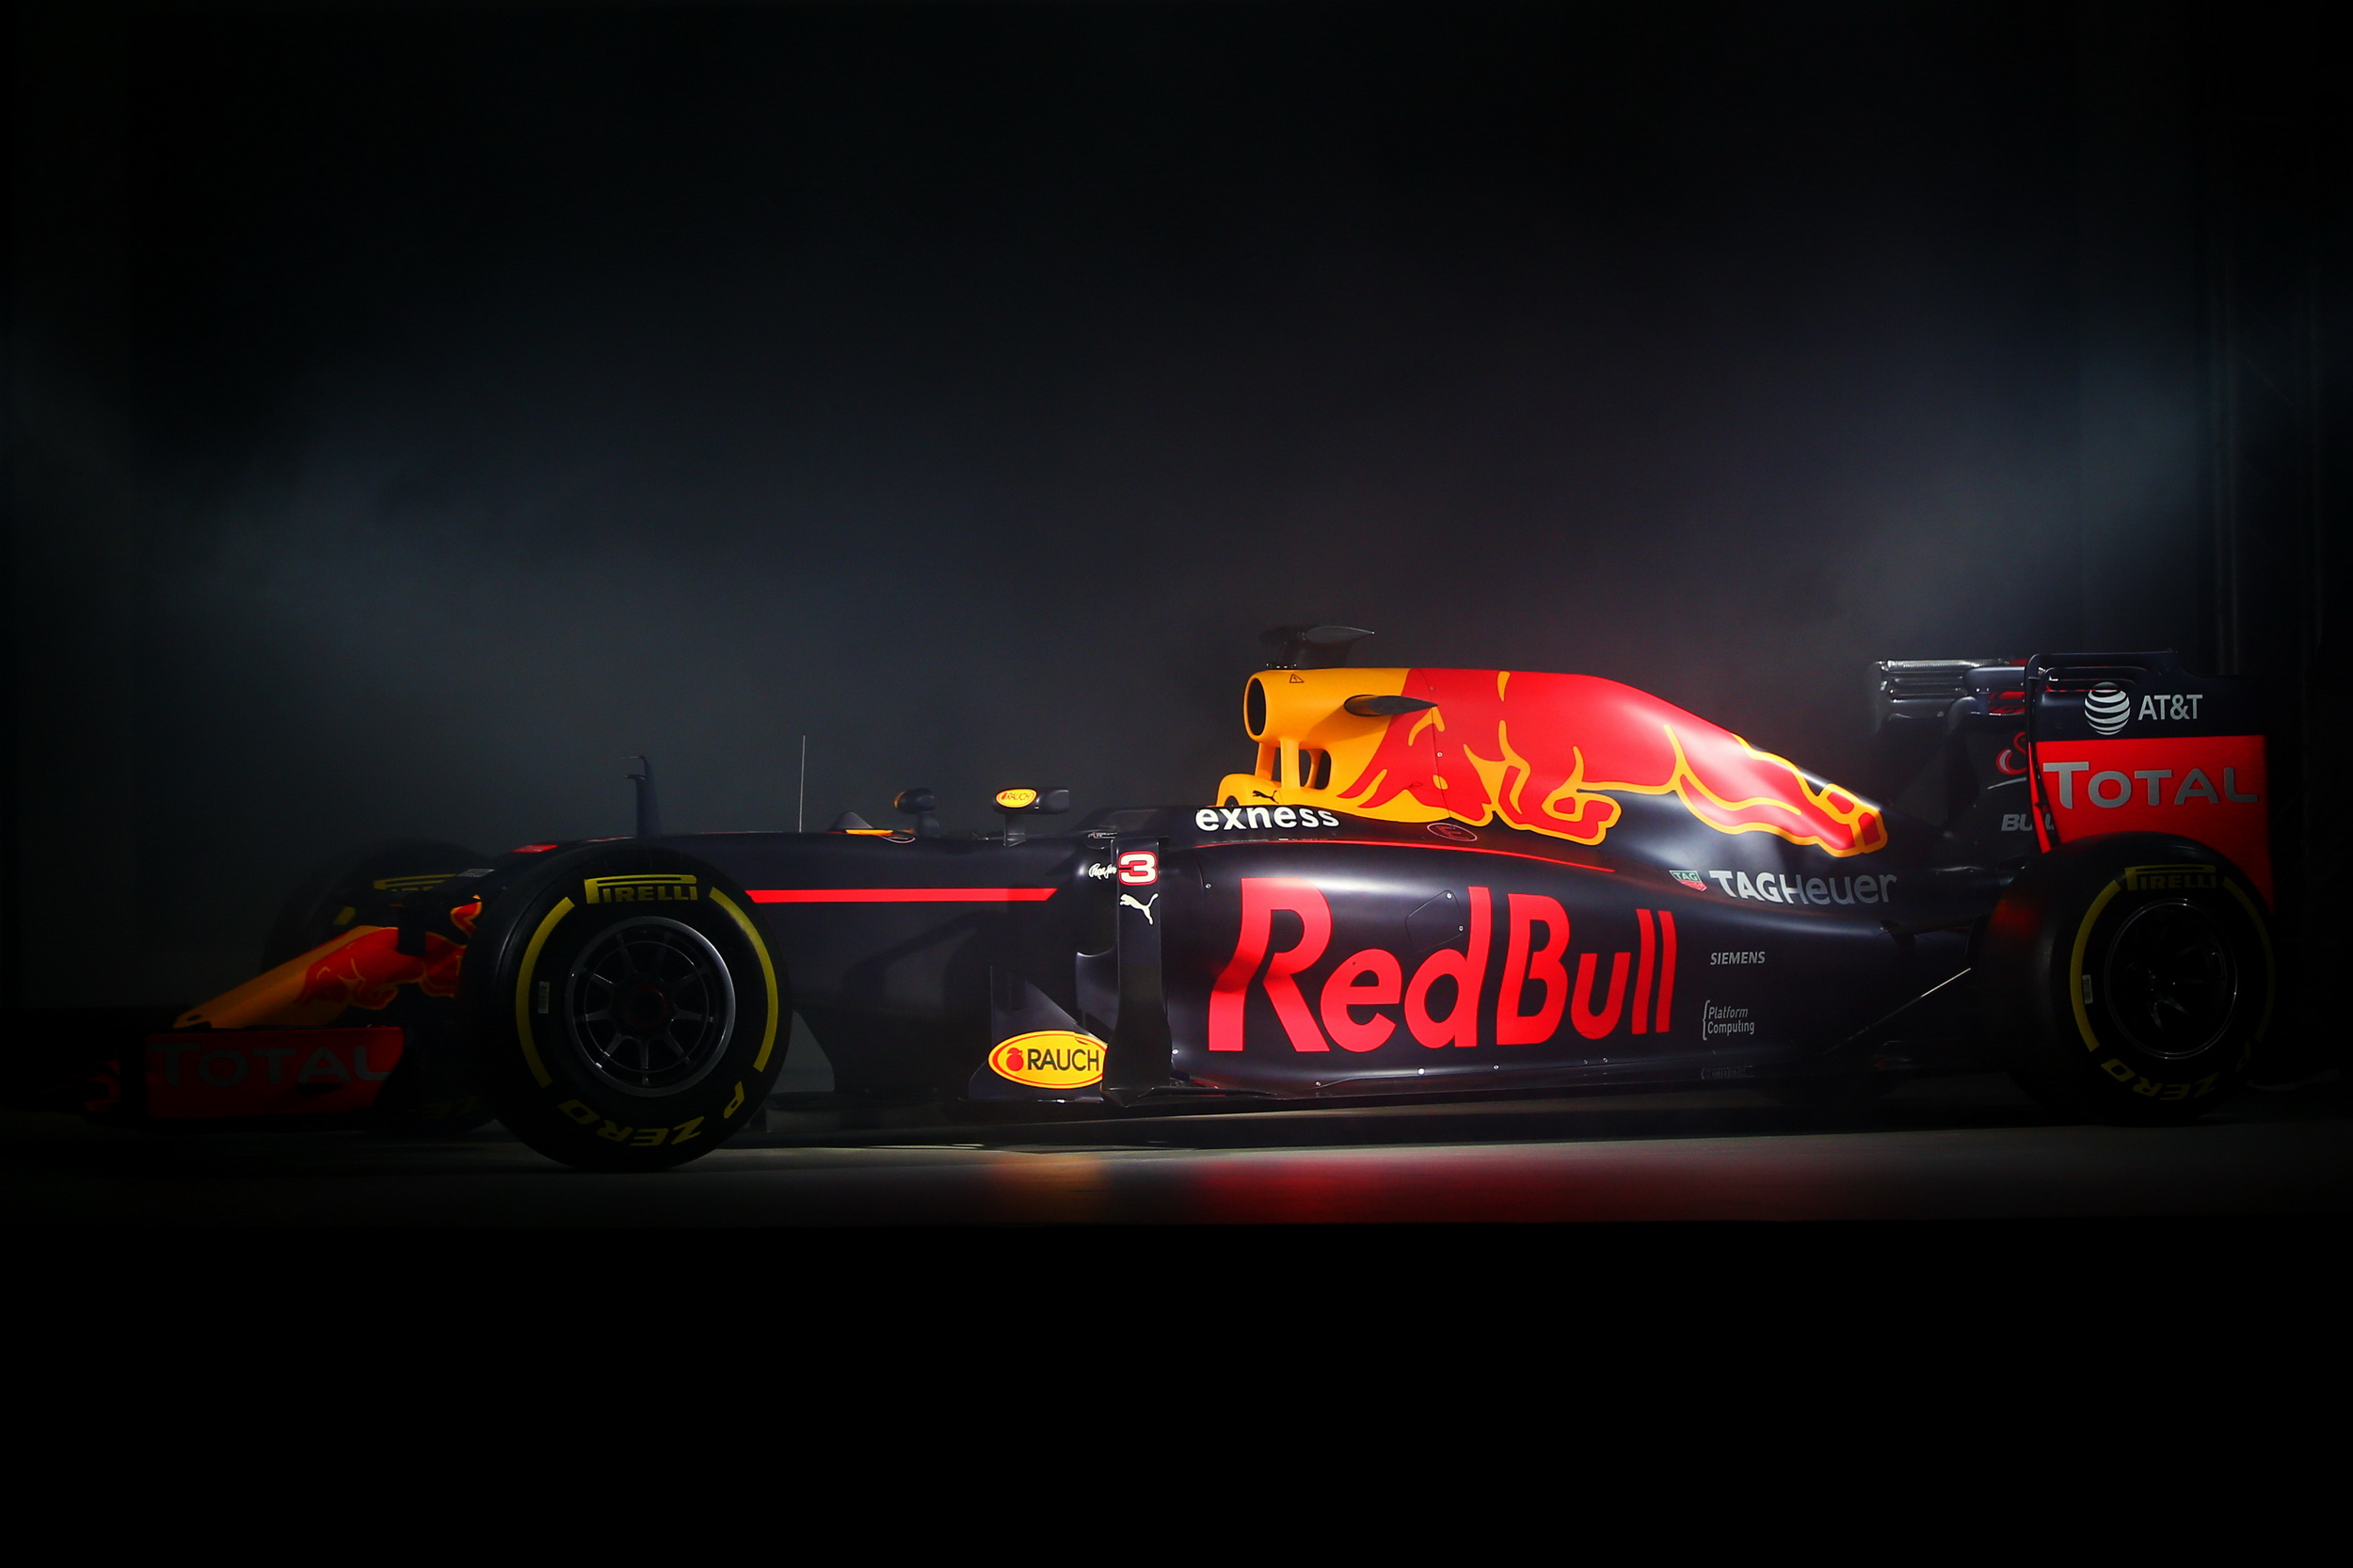 red bull racing f1 2016 livery f1 bloggen med janne blomqvist. Black Bedroom Furniture Sets. Home Design Ideas